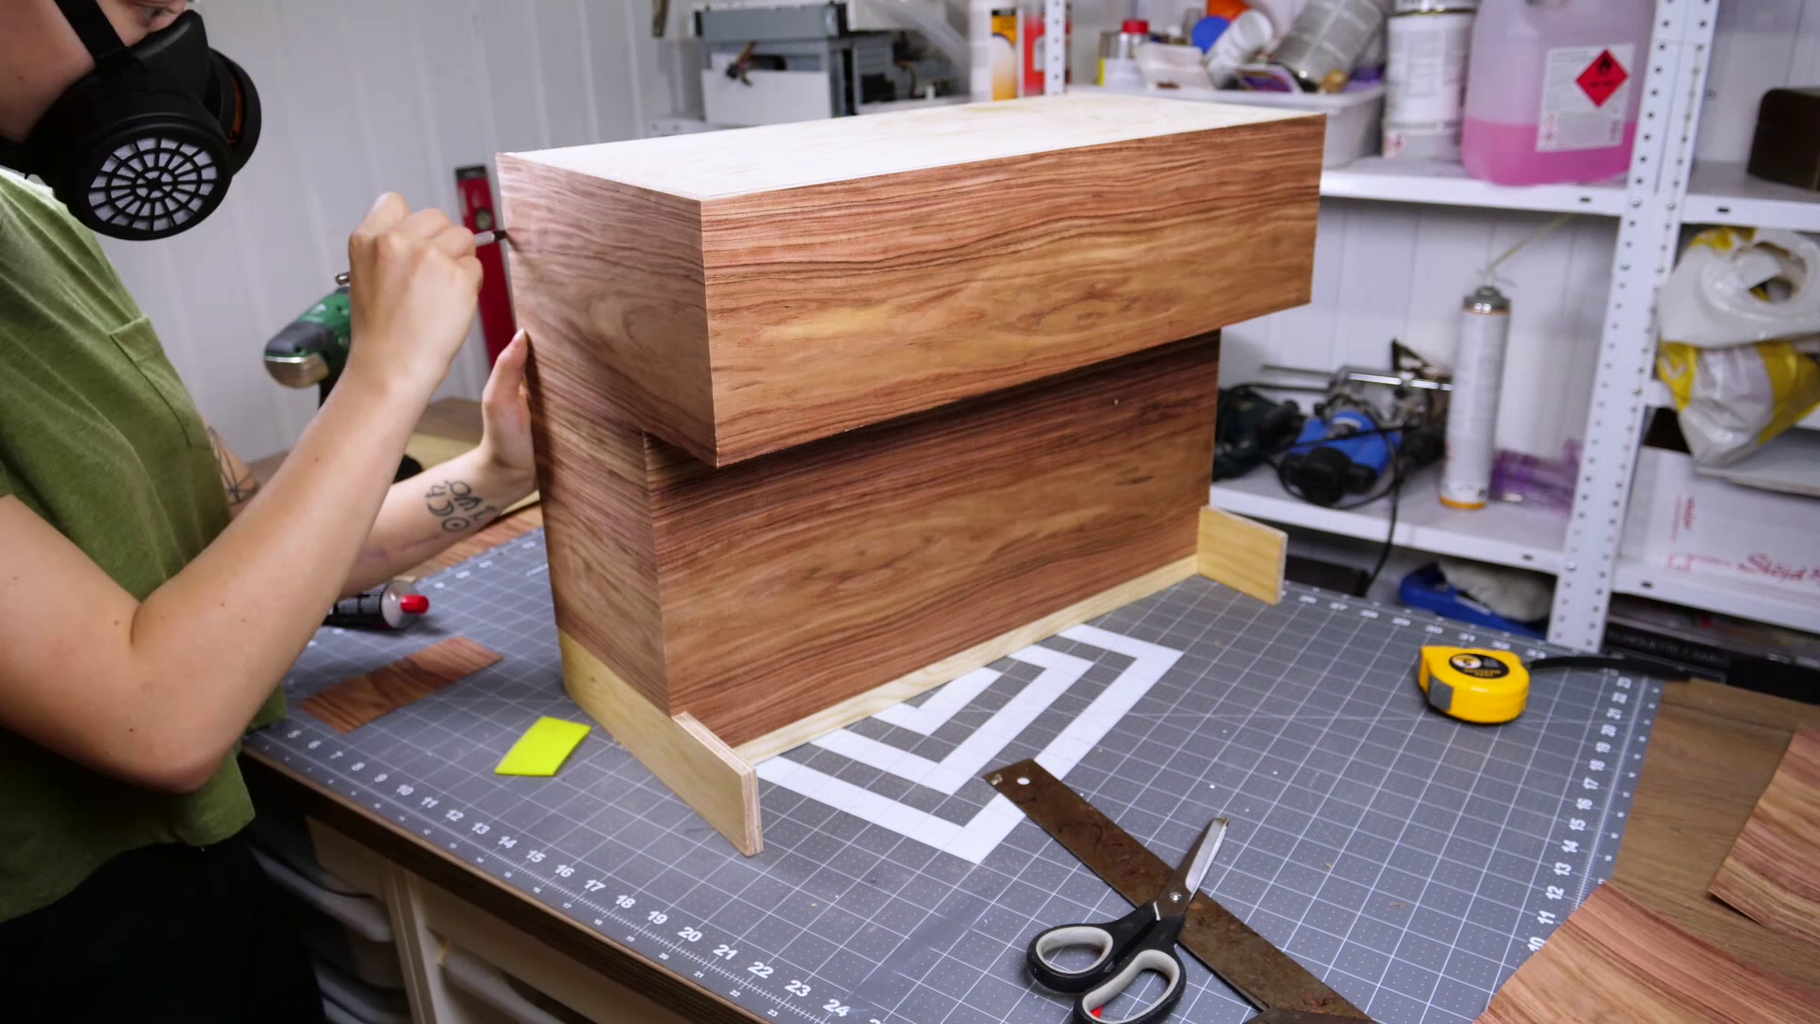 Covering Everything Up With Veneer